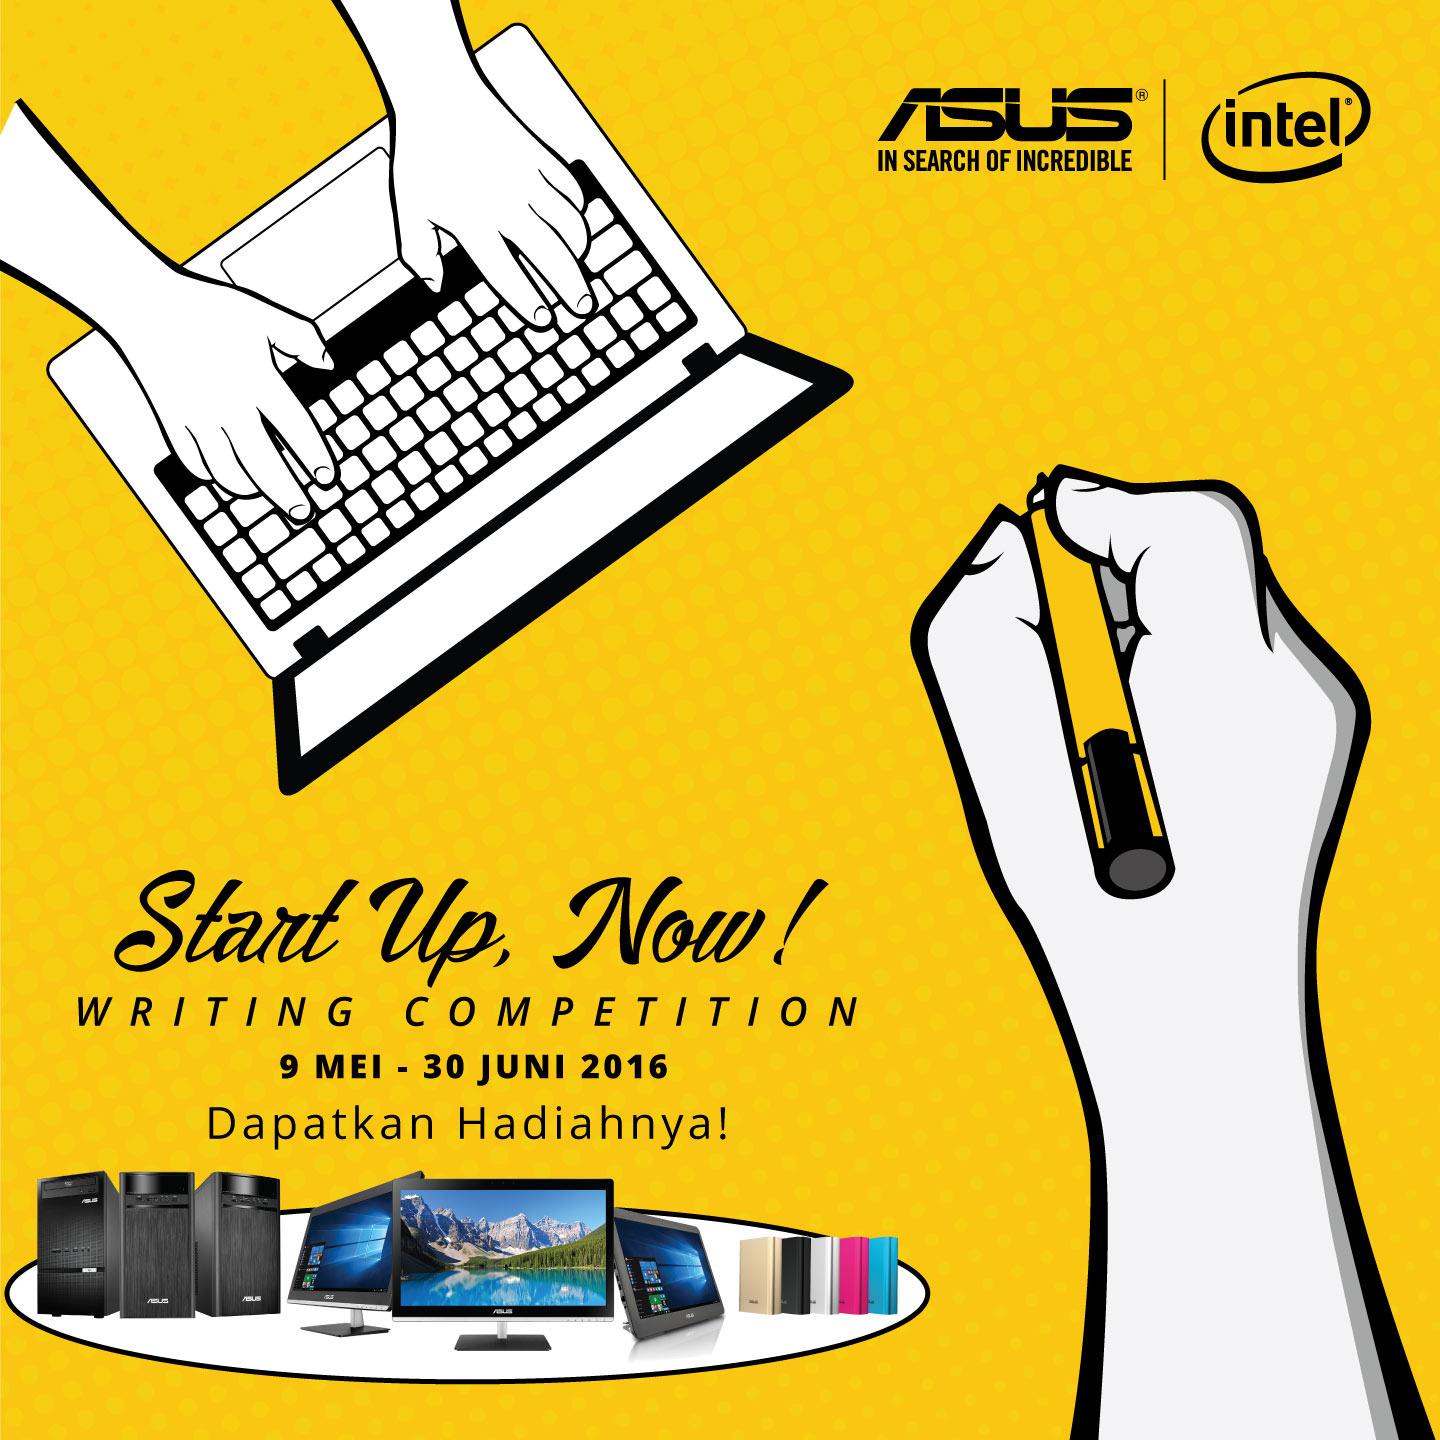 ASUS StartUp Now Writing Competition - Banner